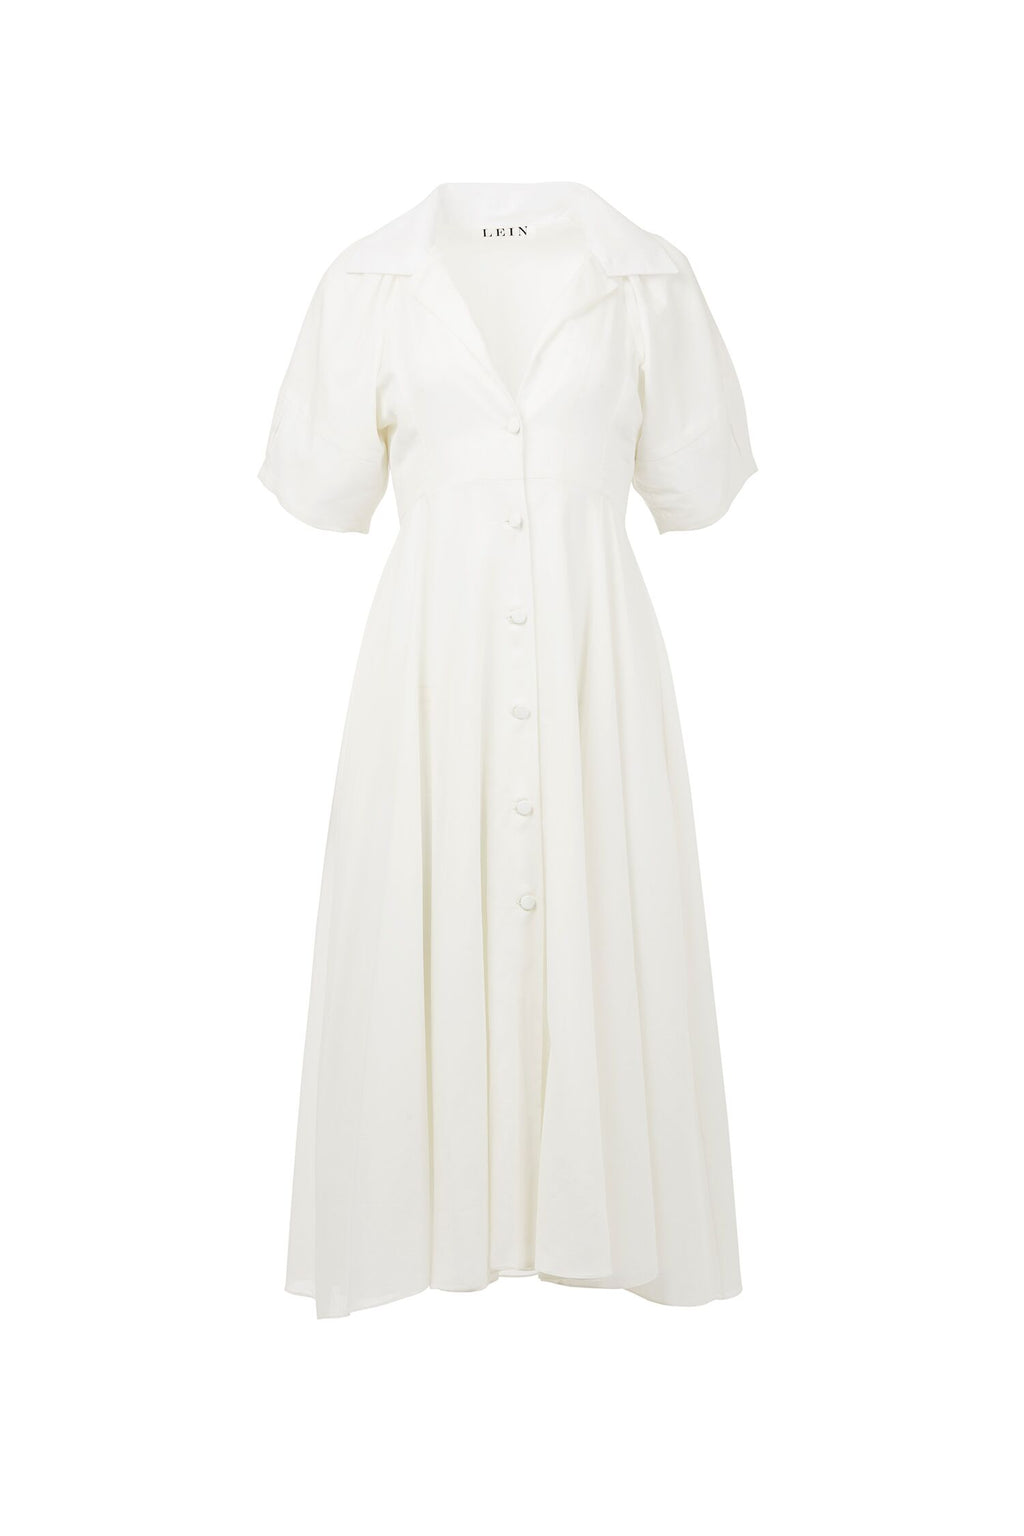 Madsie's Button-Down Cotton Maxi Dress